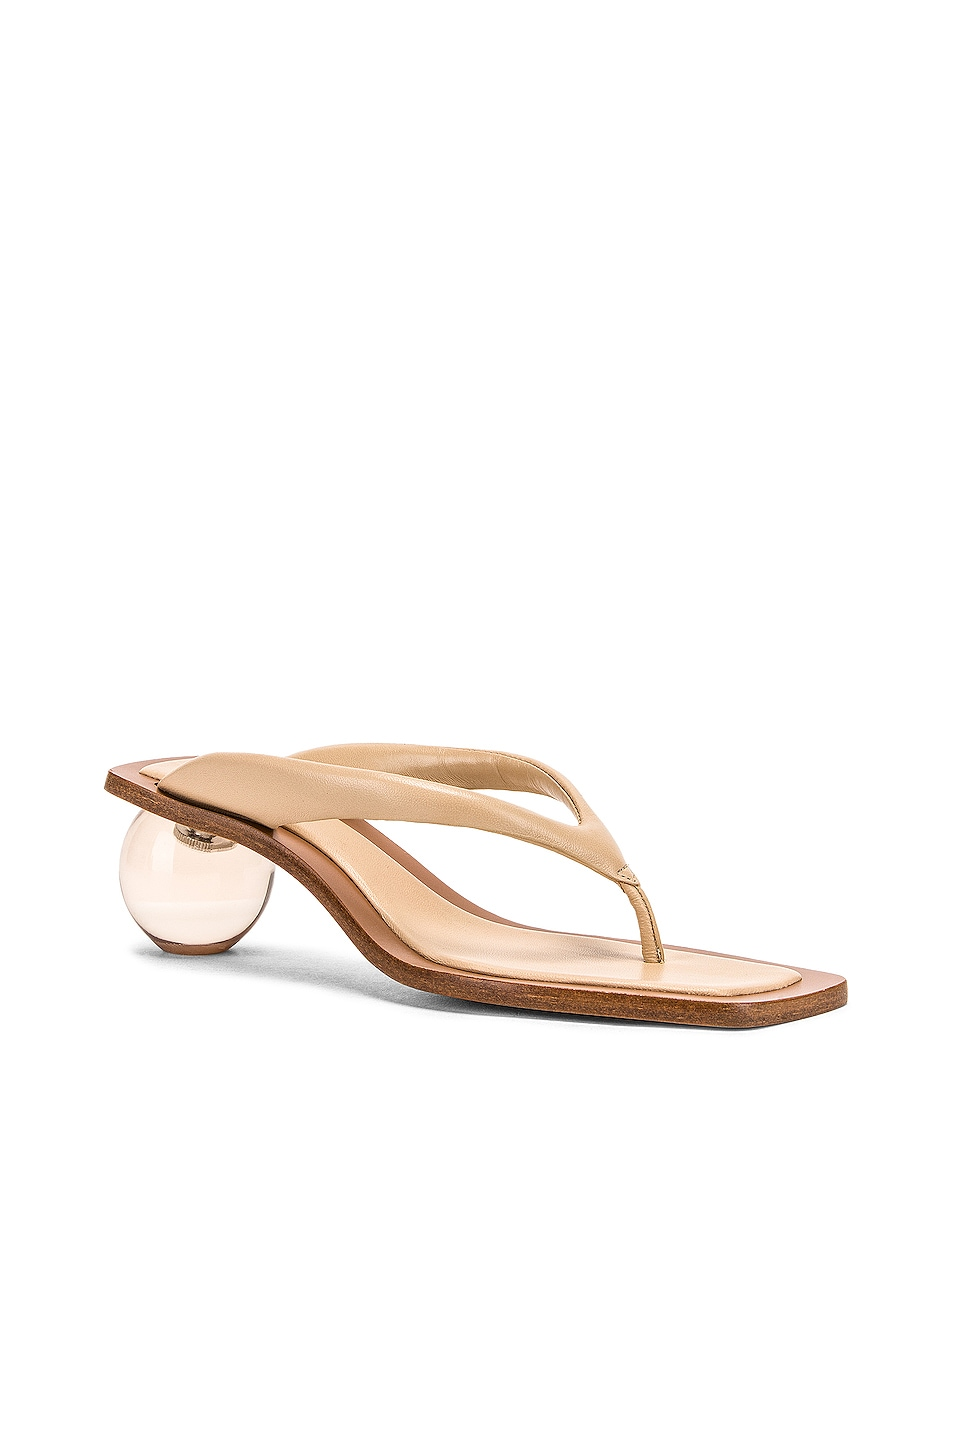 Image 2 of Cult Gaia Jasmin Sandal in Sand